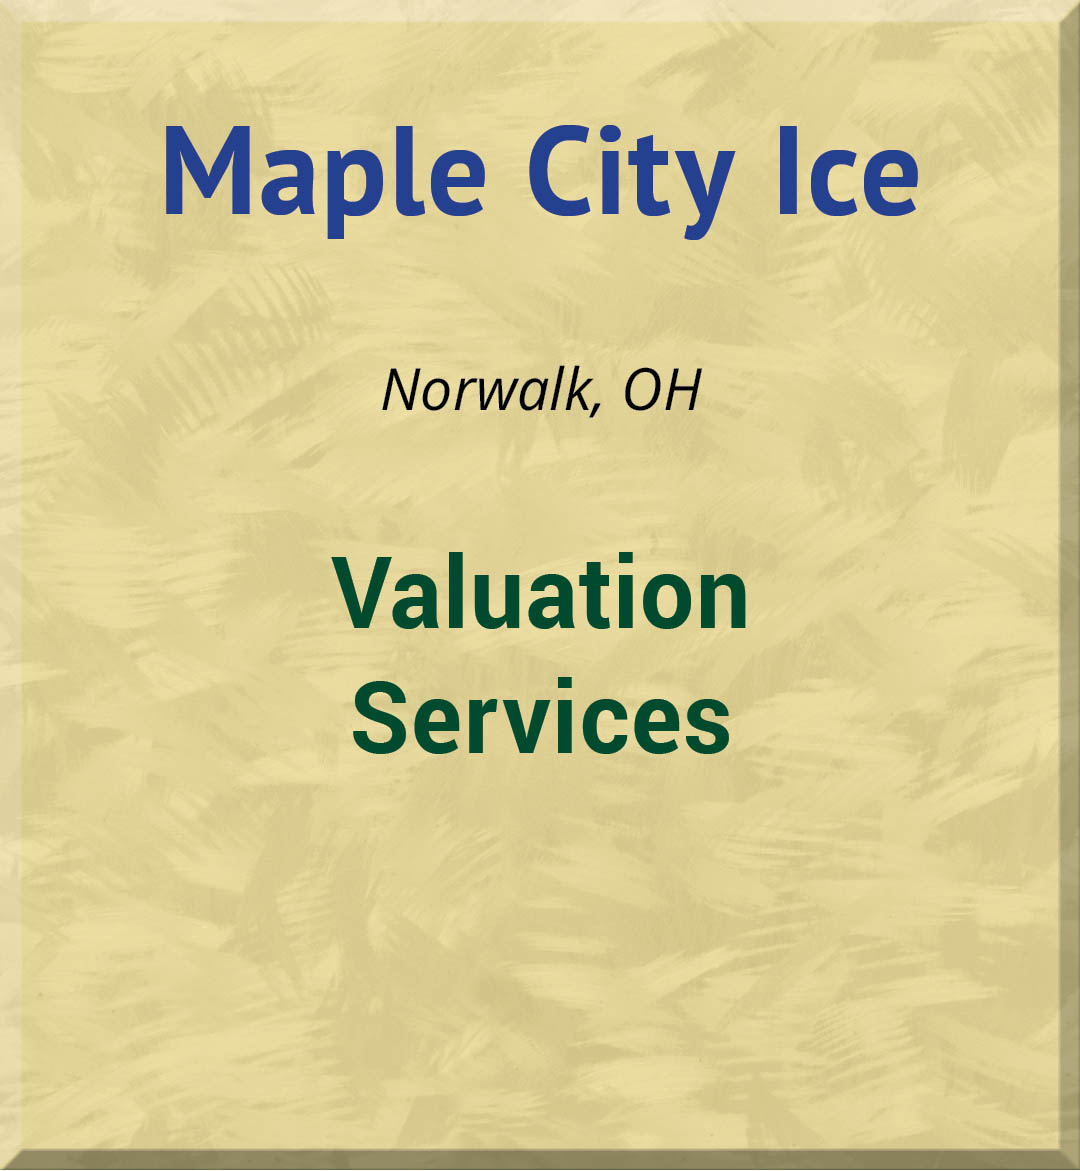 Maple City Ice